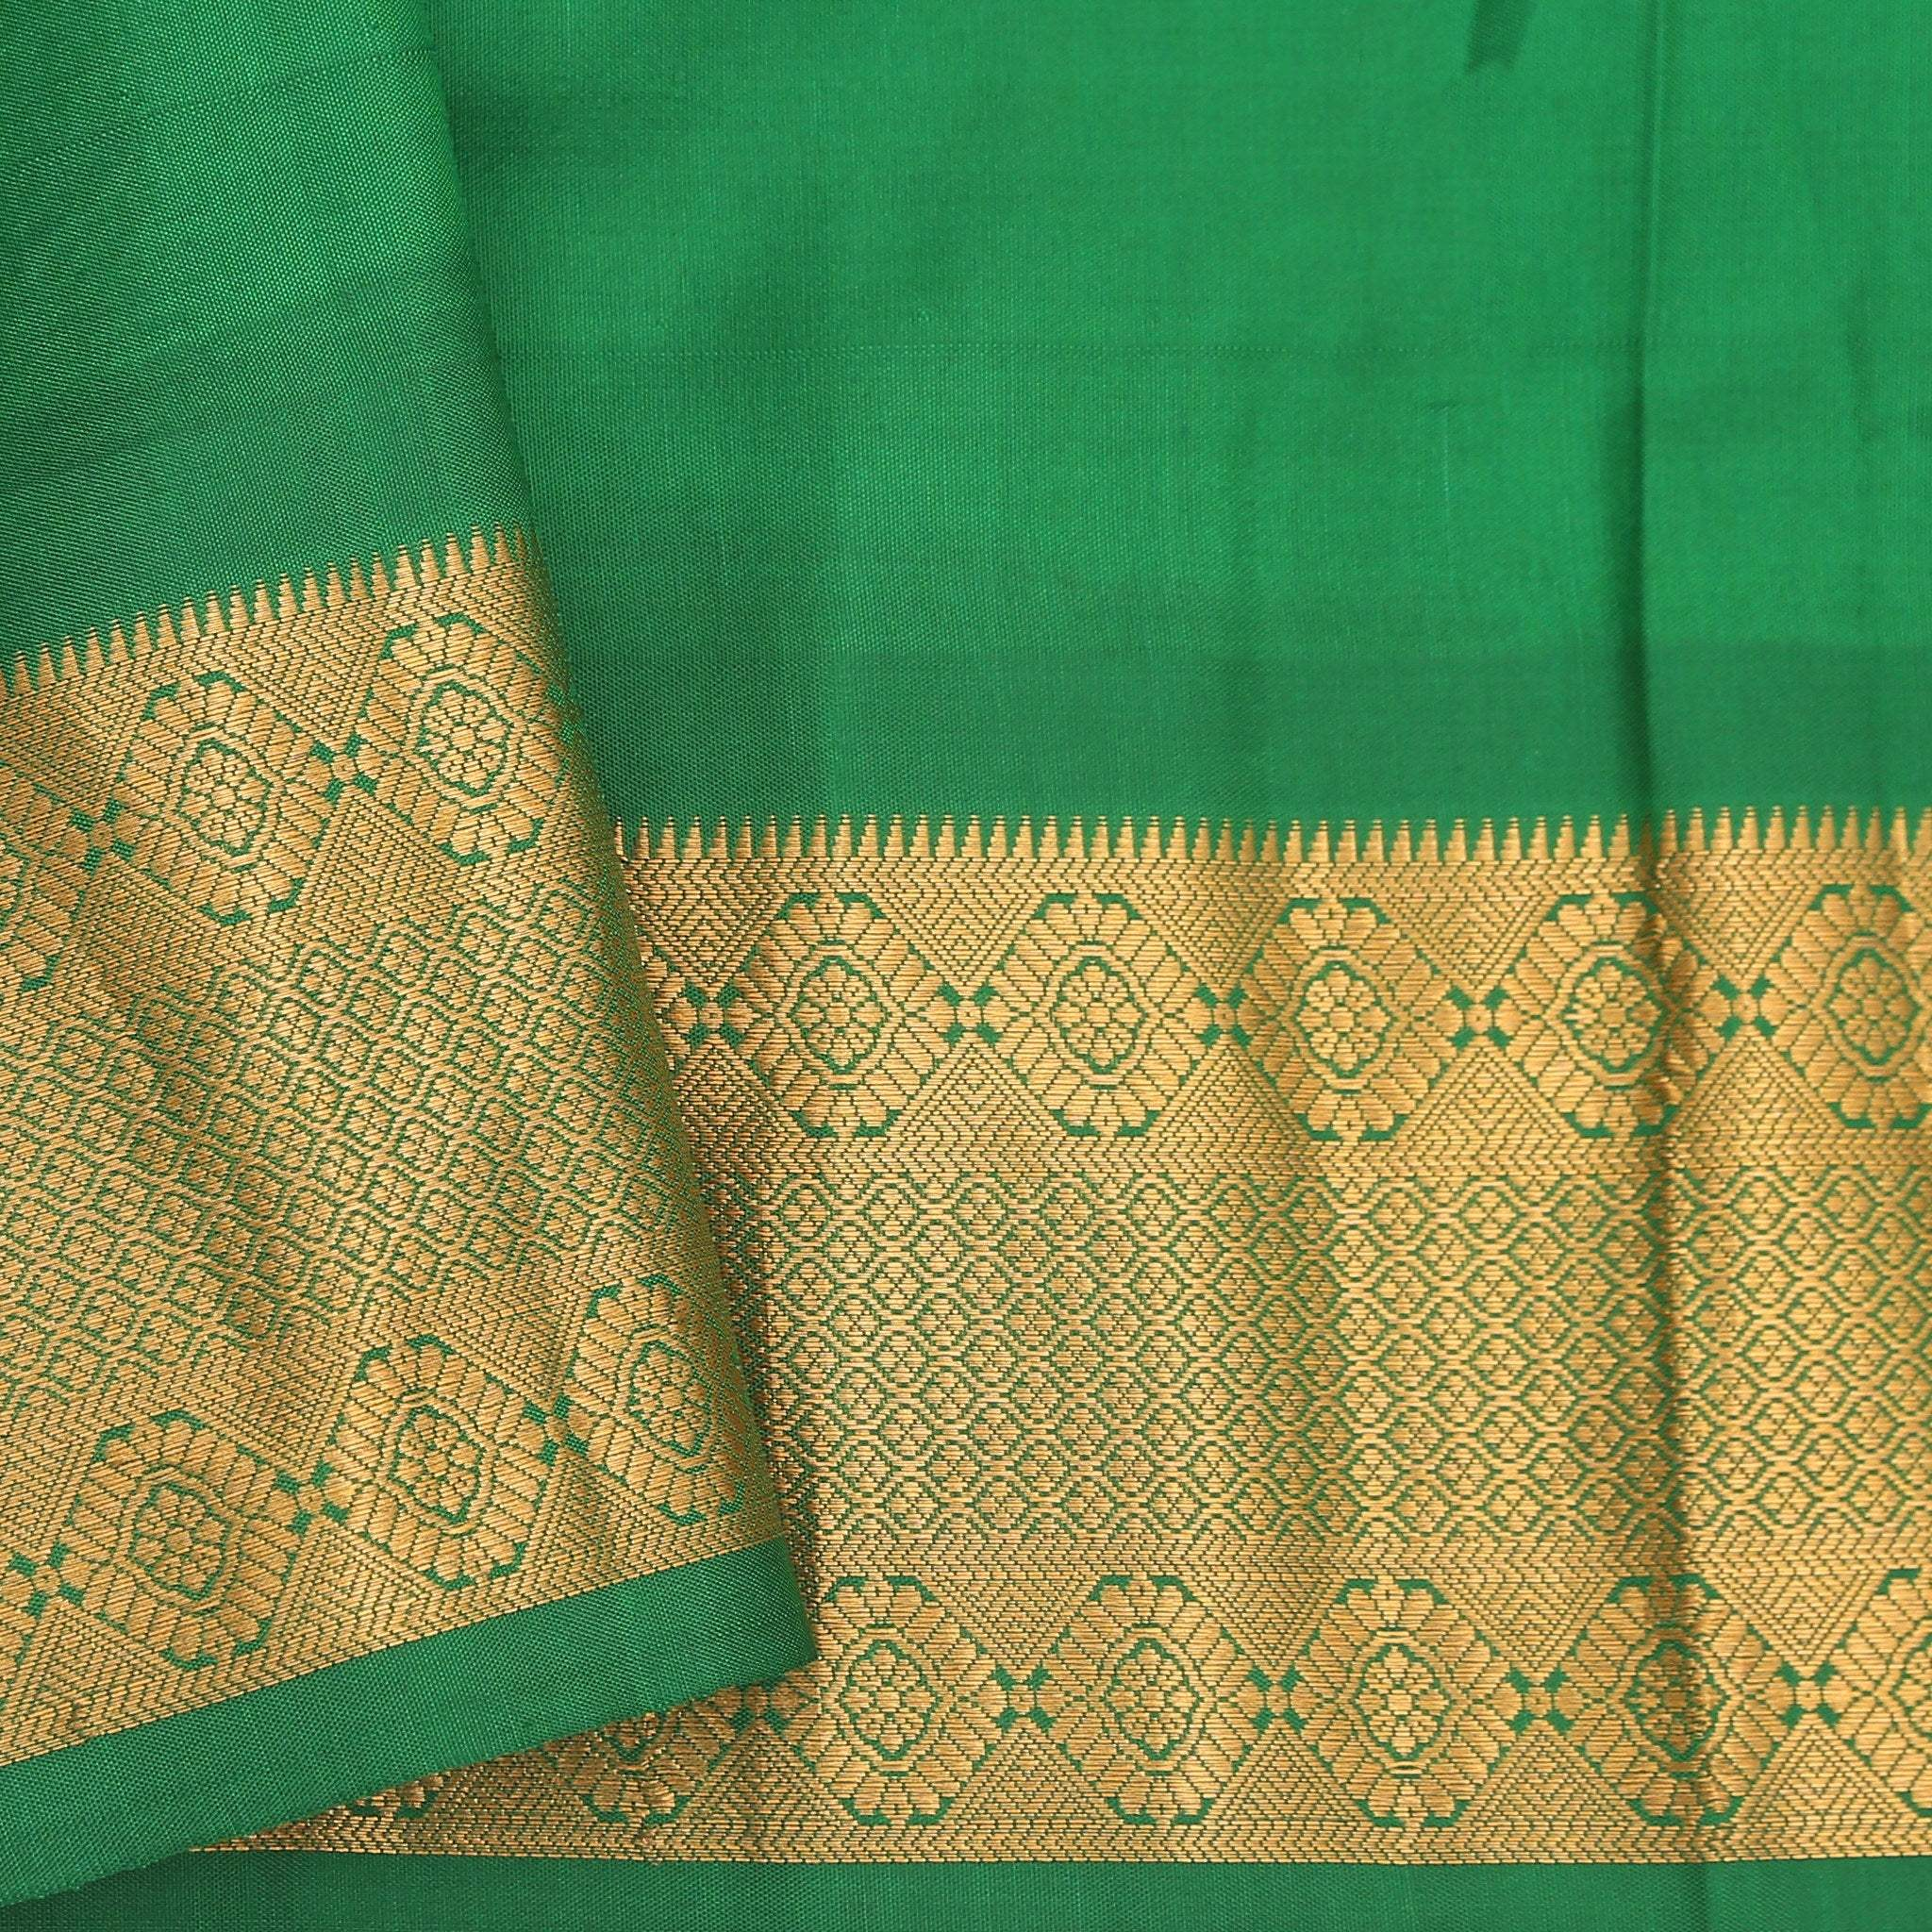 BB103426-Lemon Yellow Dainty Floral Printed Gadwal Silk Handloom Saree